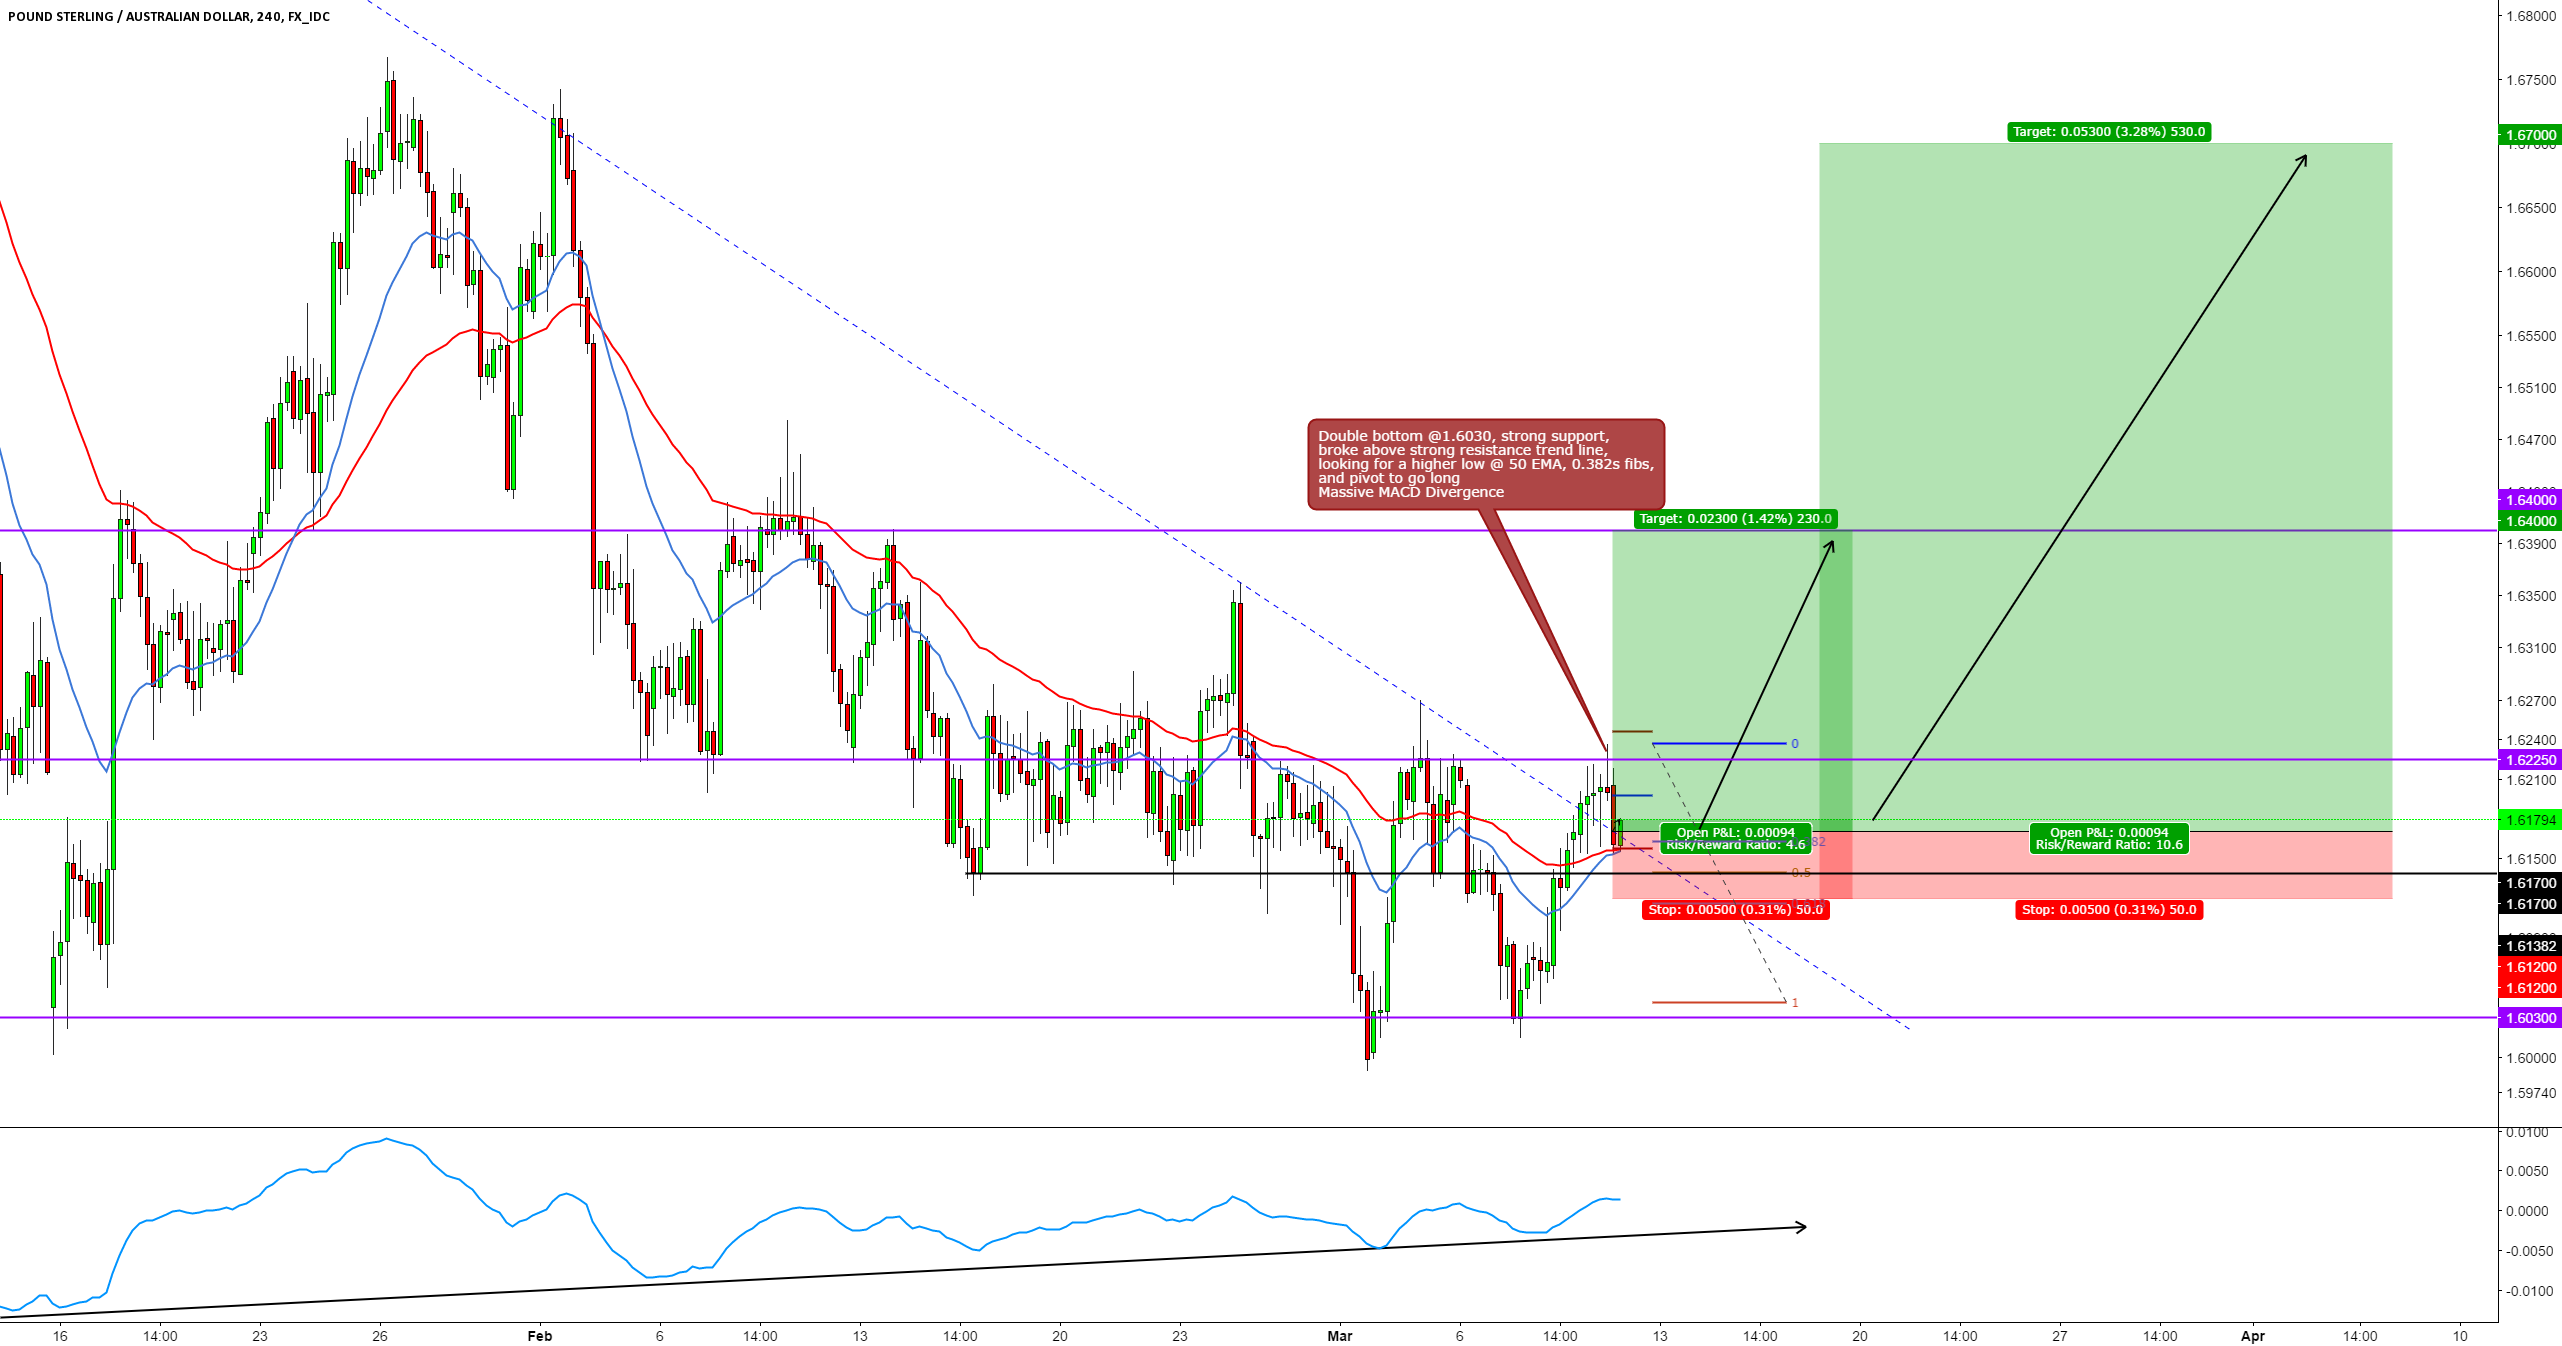 GBPAUD LONG 4 HR BREAK AND RETEST TRADE SETUP